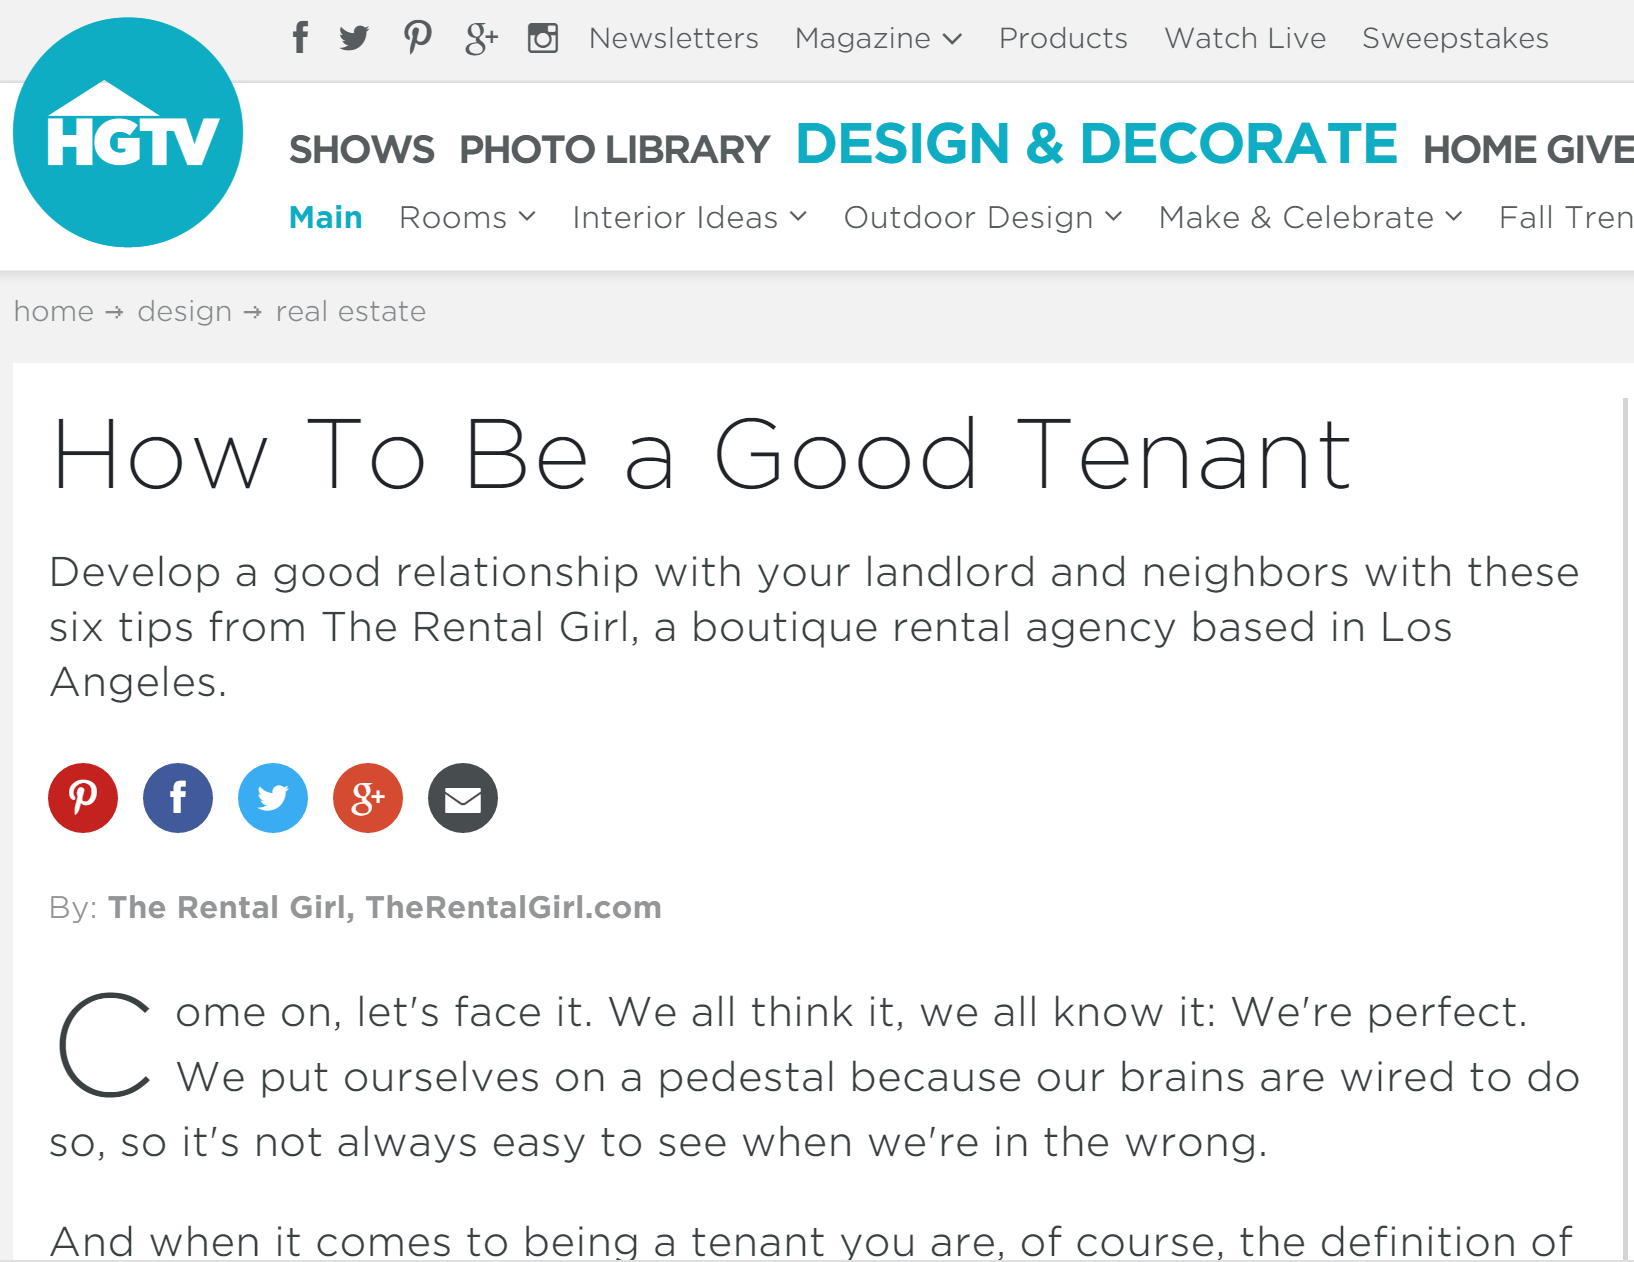 HGTV How to be a good tenant